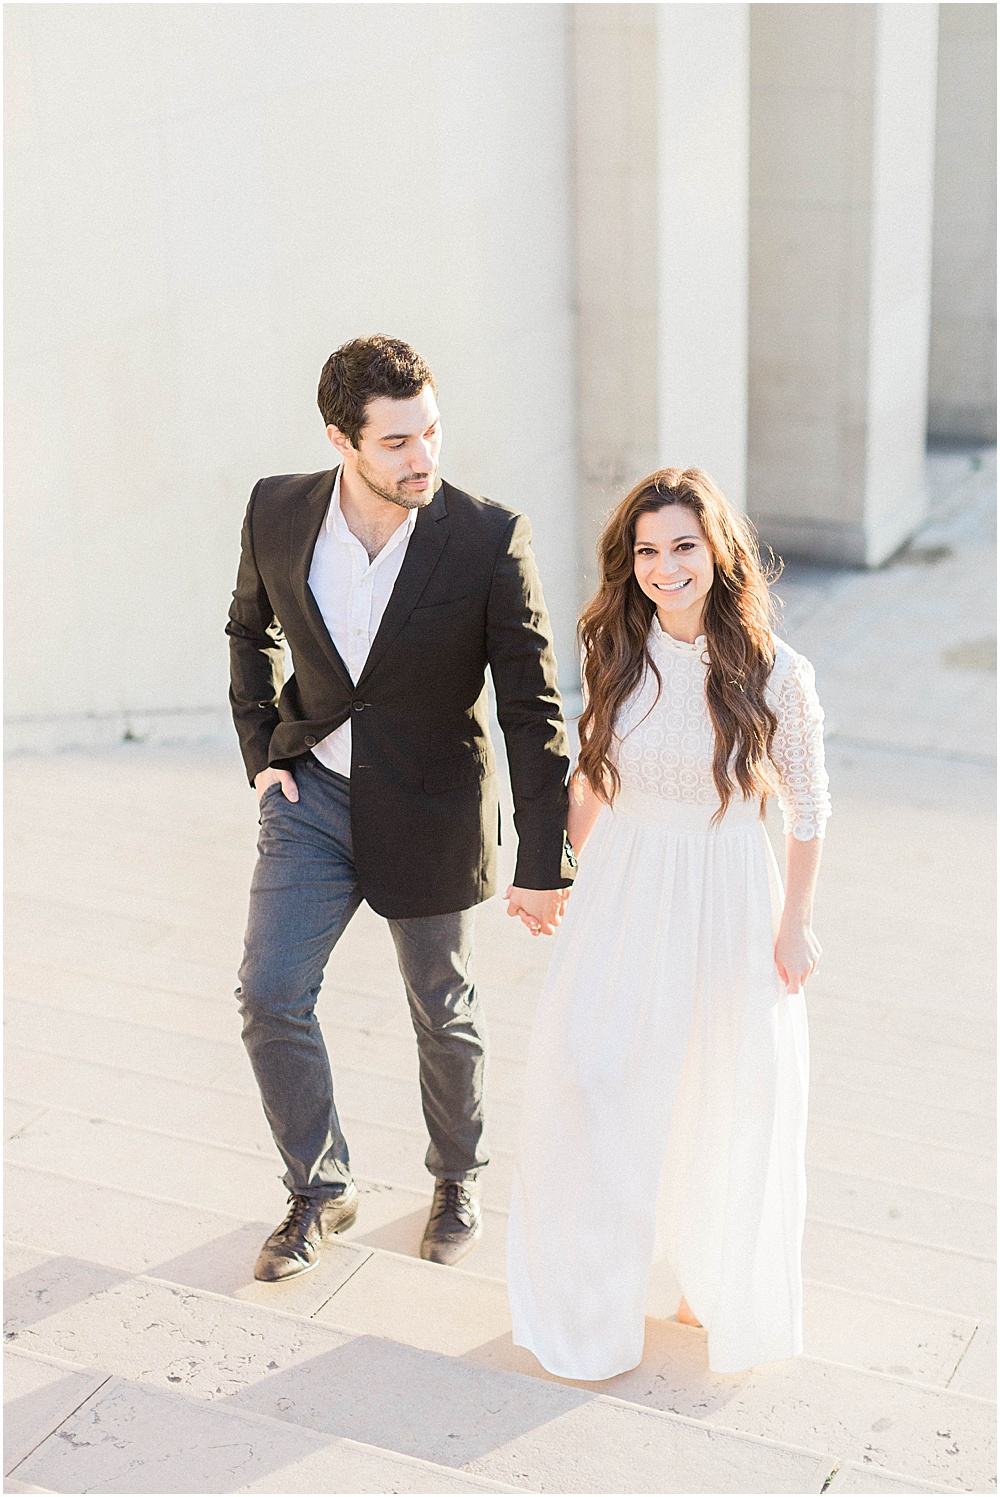 Trocadero_stairs_paris_white_gown_destination_pre_wedding_spring_engagement_session_boston_wedding_photographer_meredith_jane_photography_photo_0226.jpg